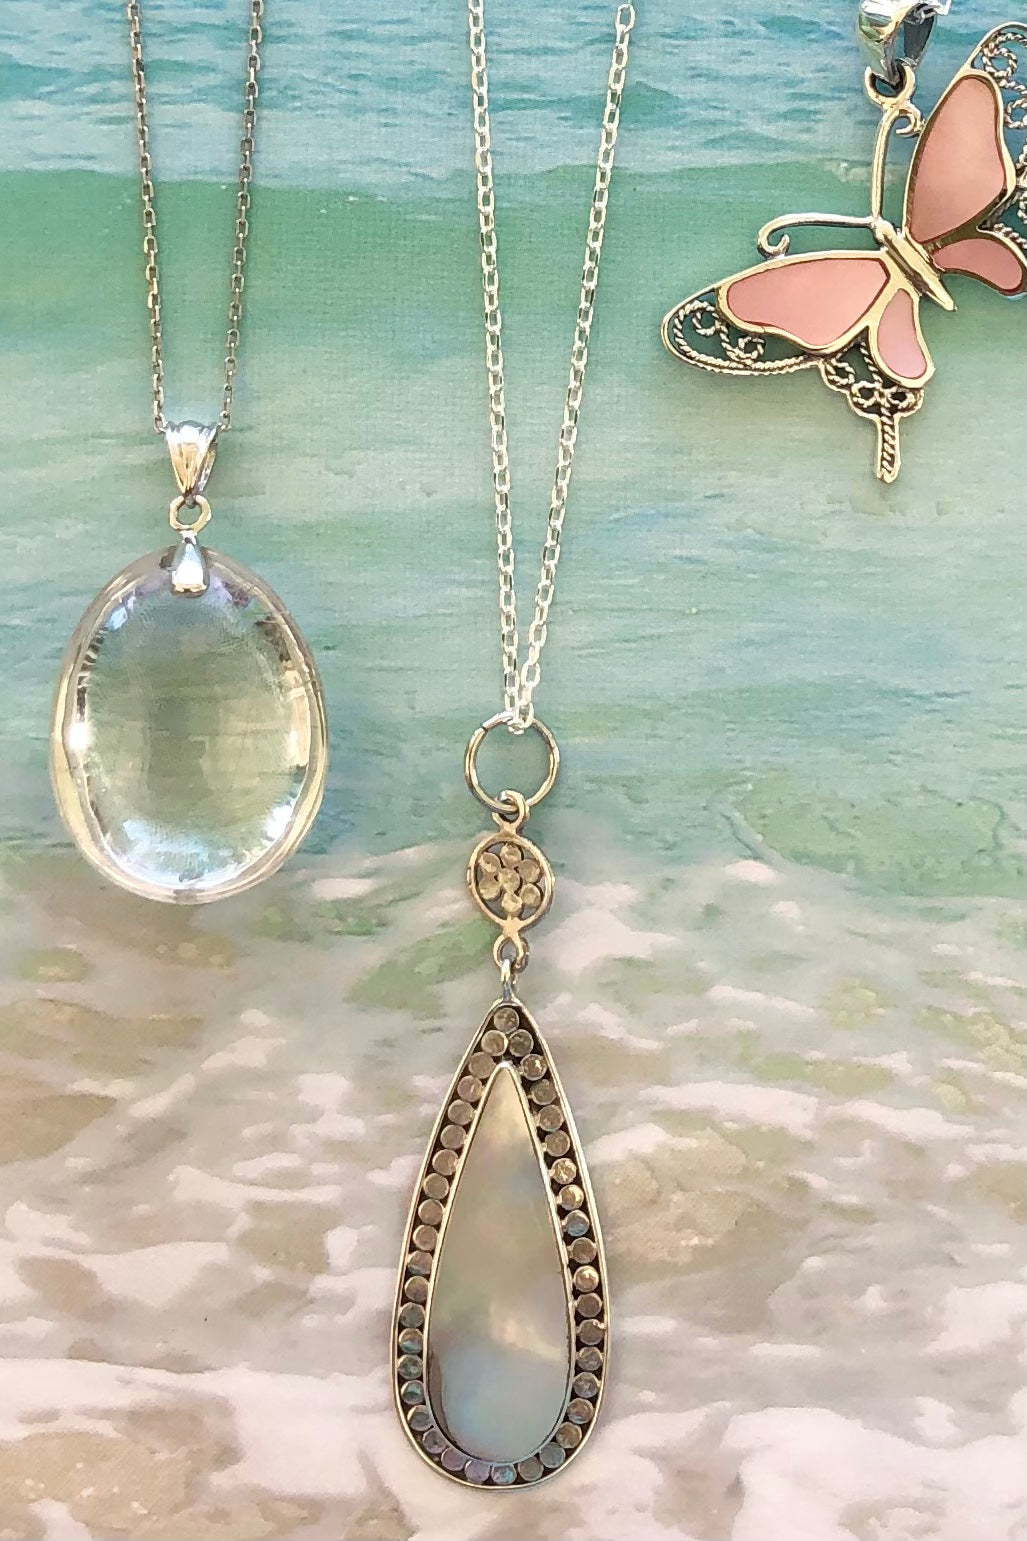 Vintage inspired Mother of Pearl teardrop pendant